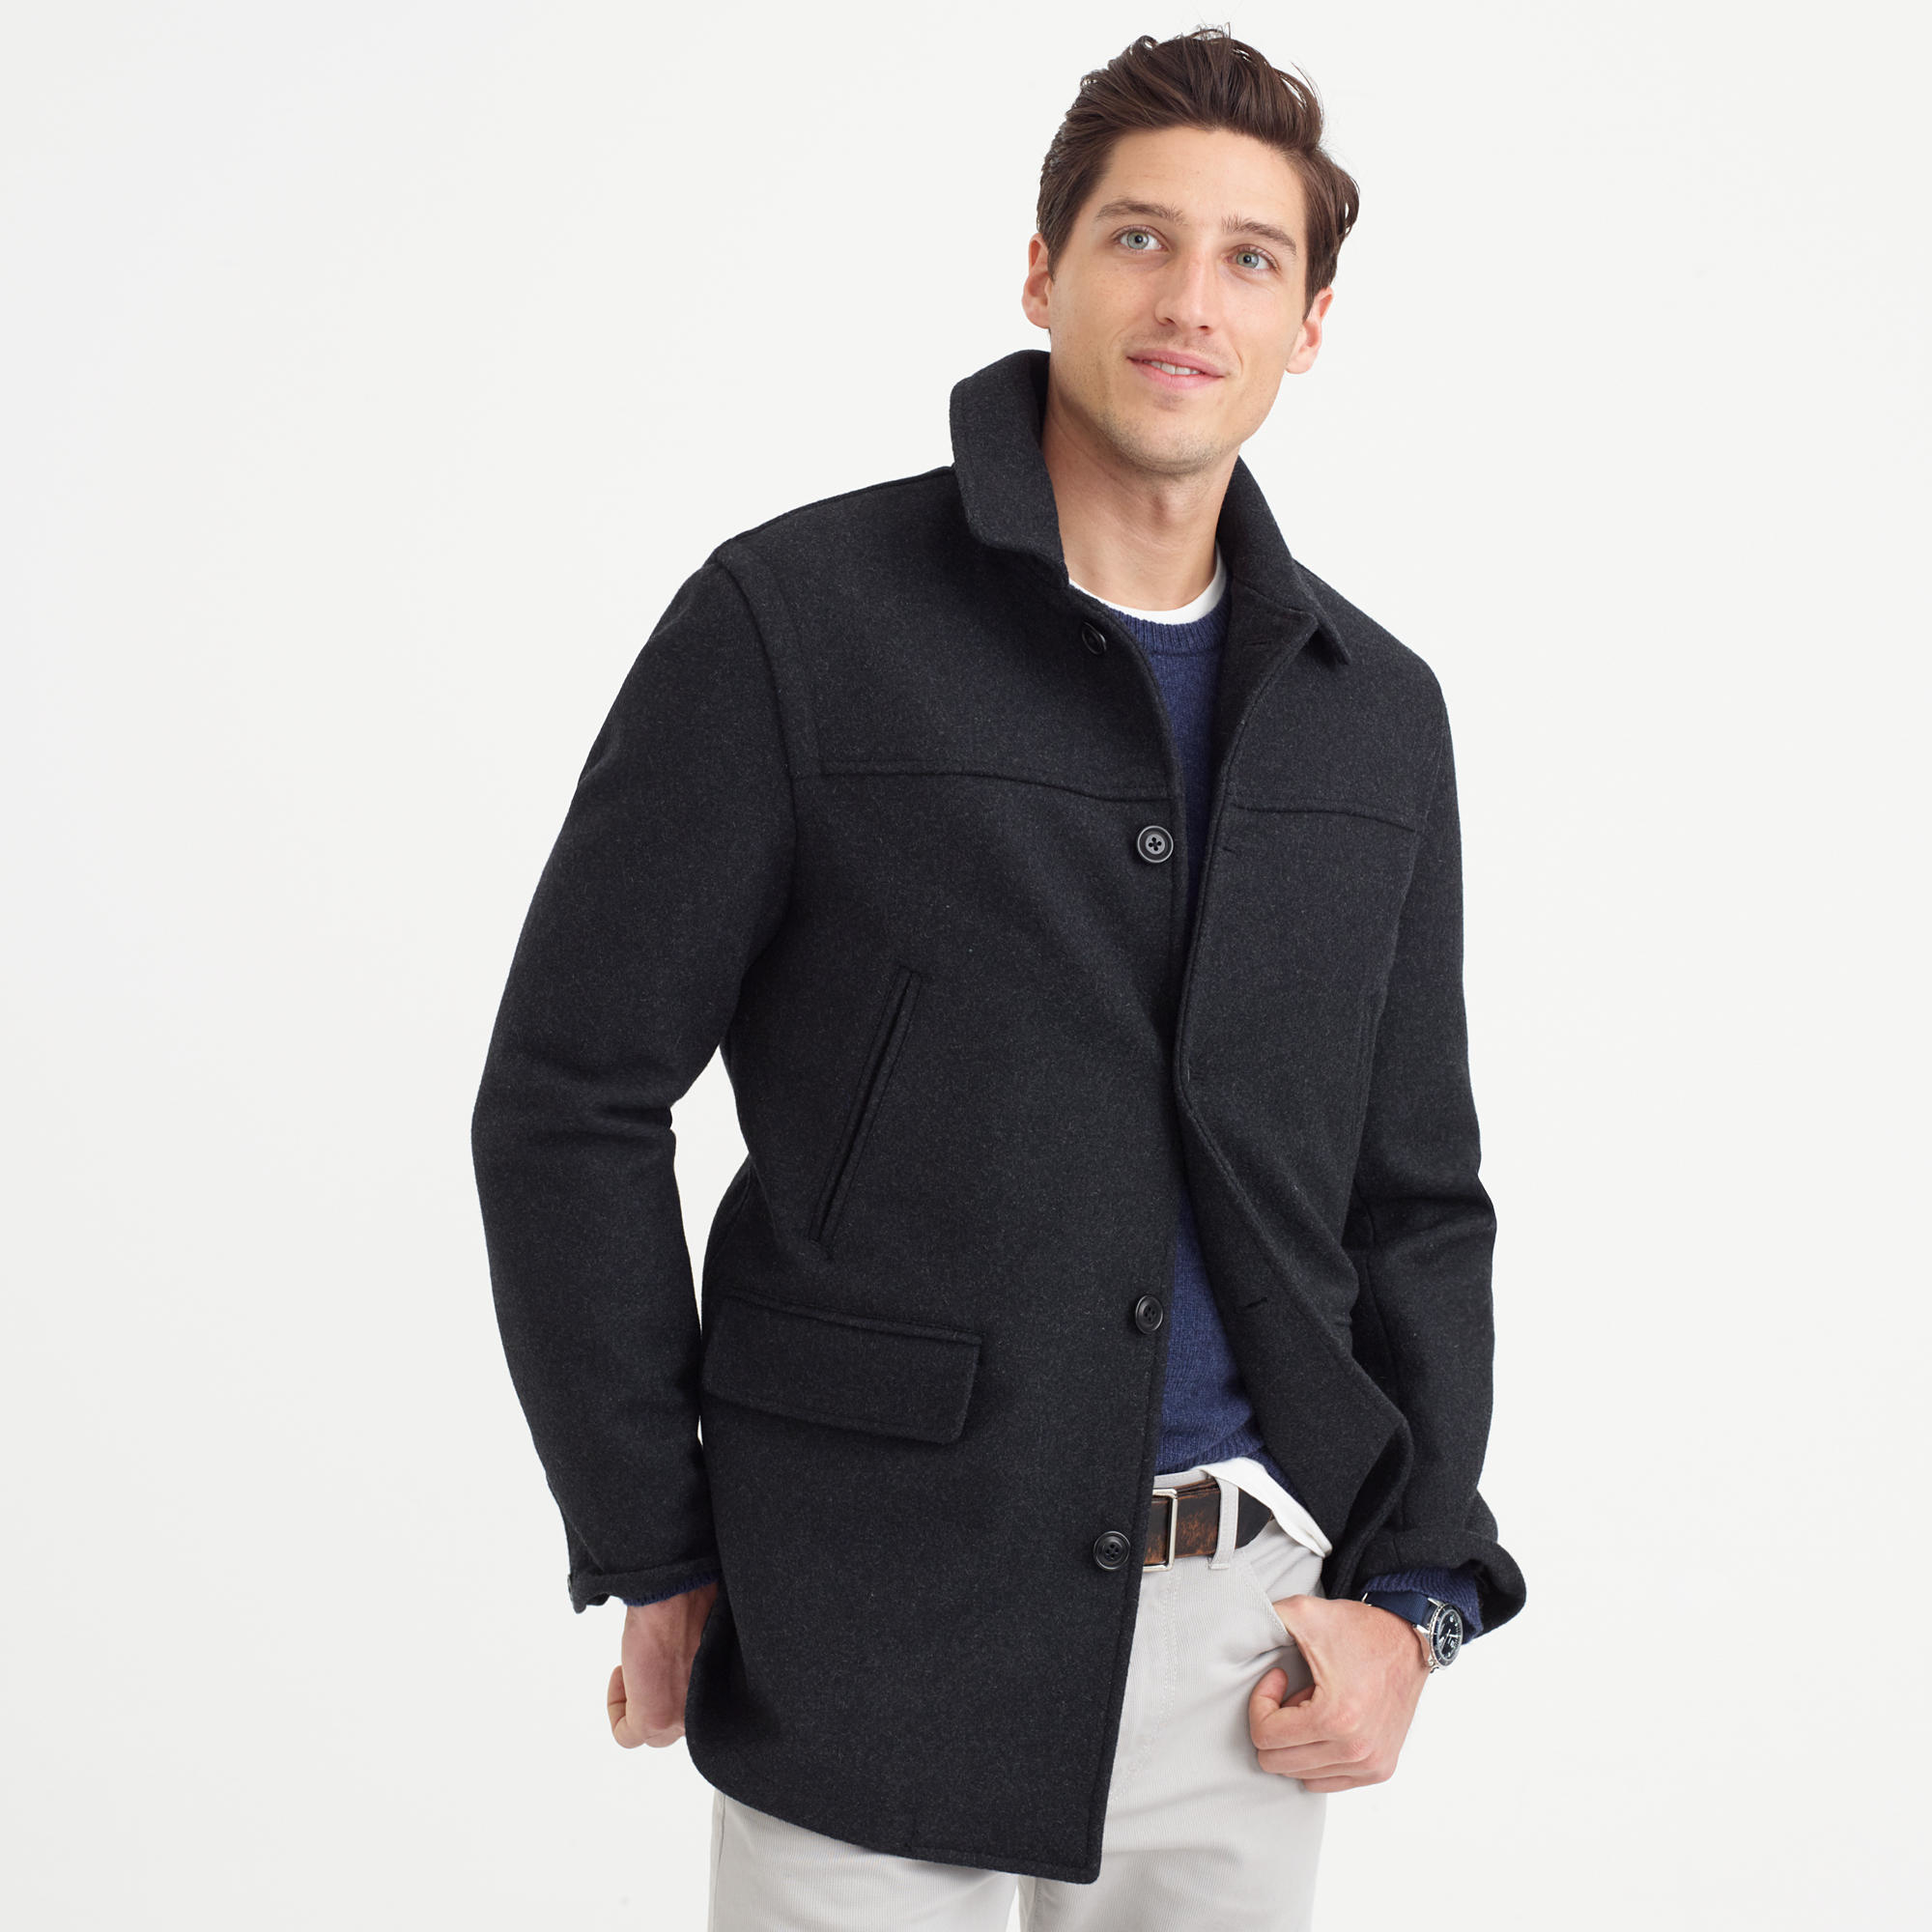 J Crew University Coat With Thinsulate In Gray For Men Lyst